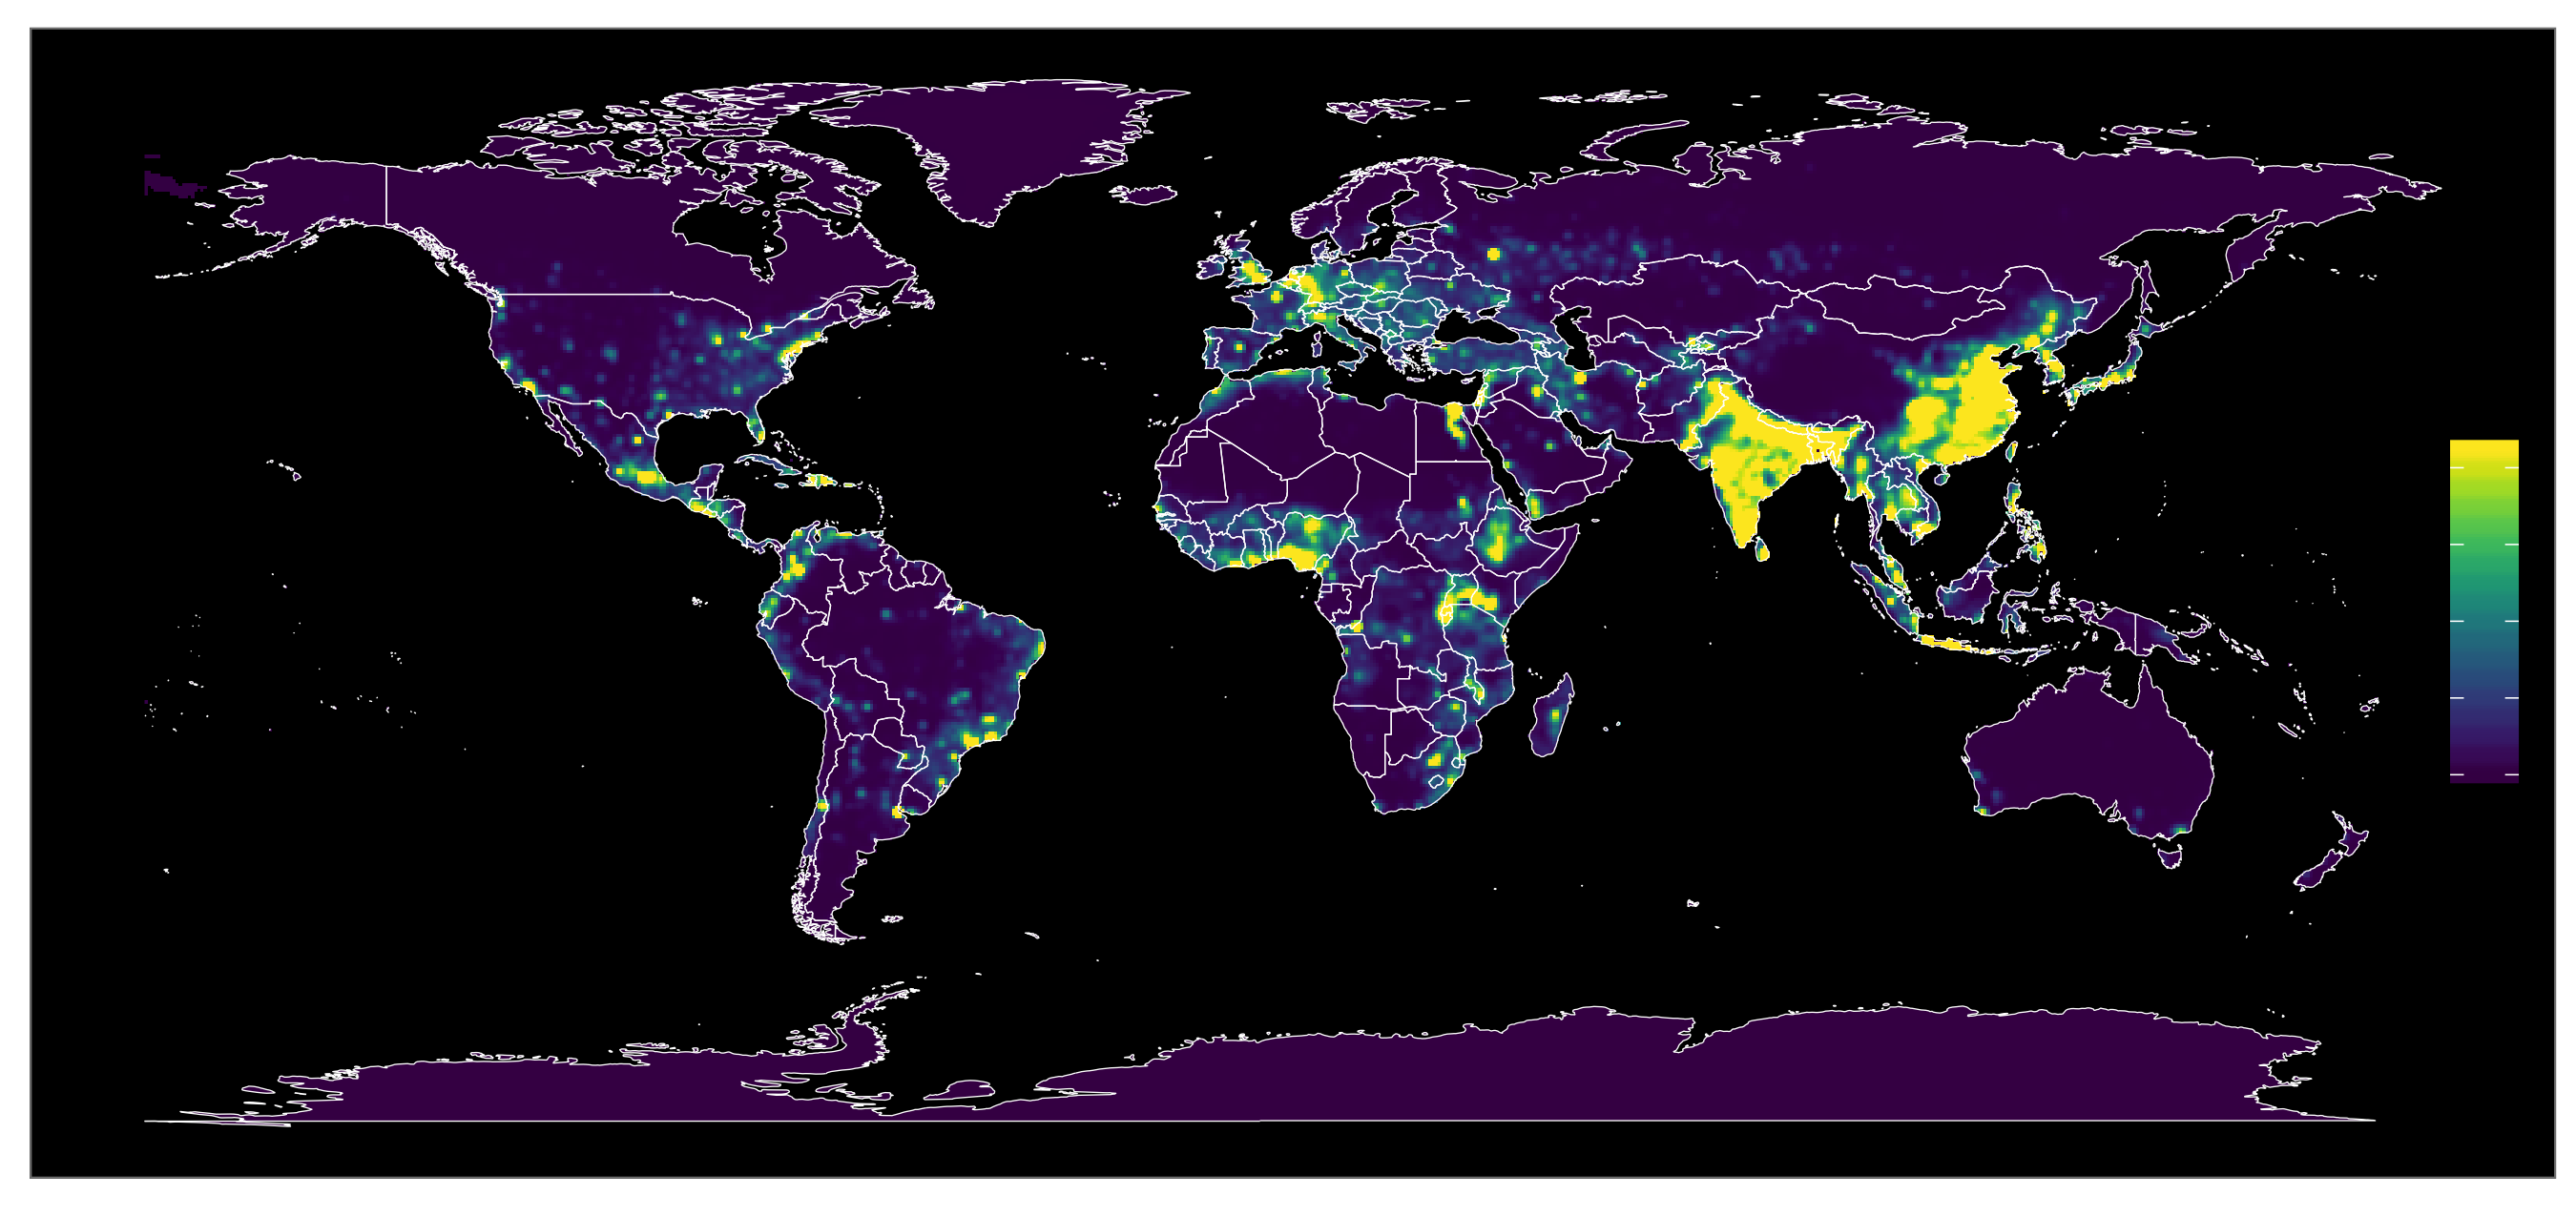 EcoHealth Alliance's Hotspots Map of Global Pandemic Risk